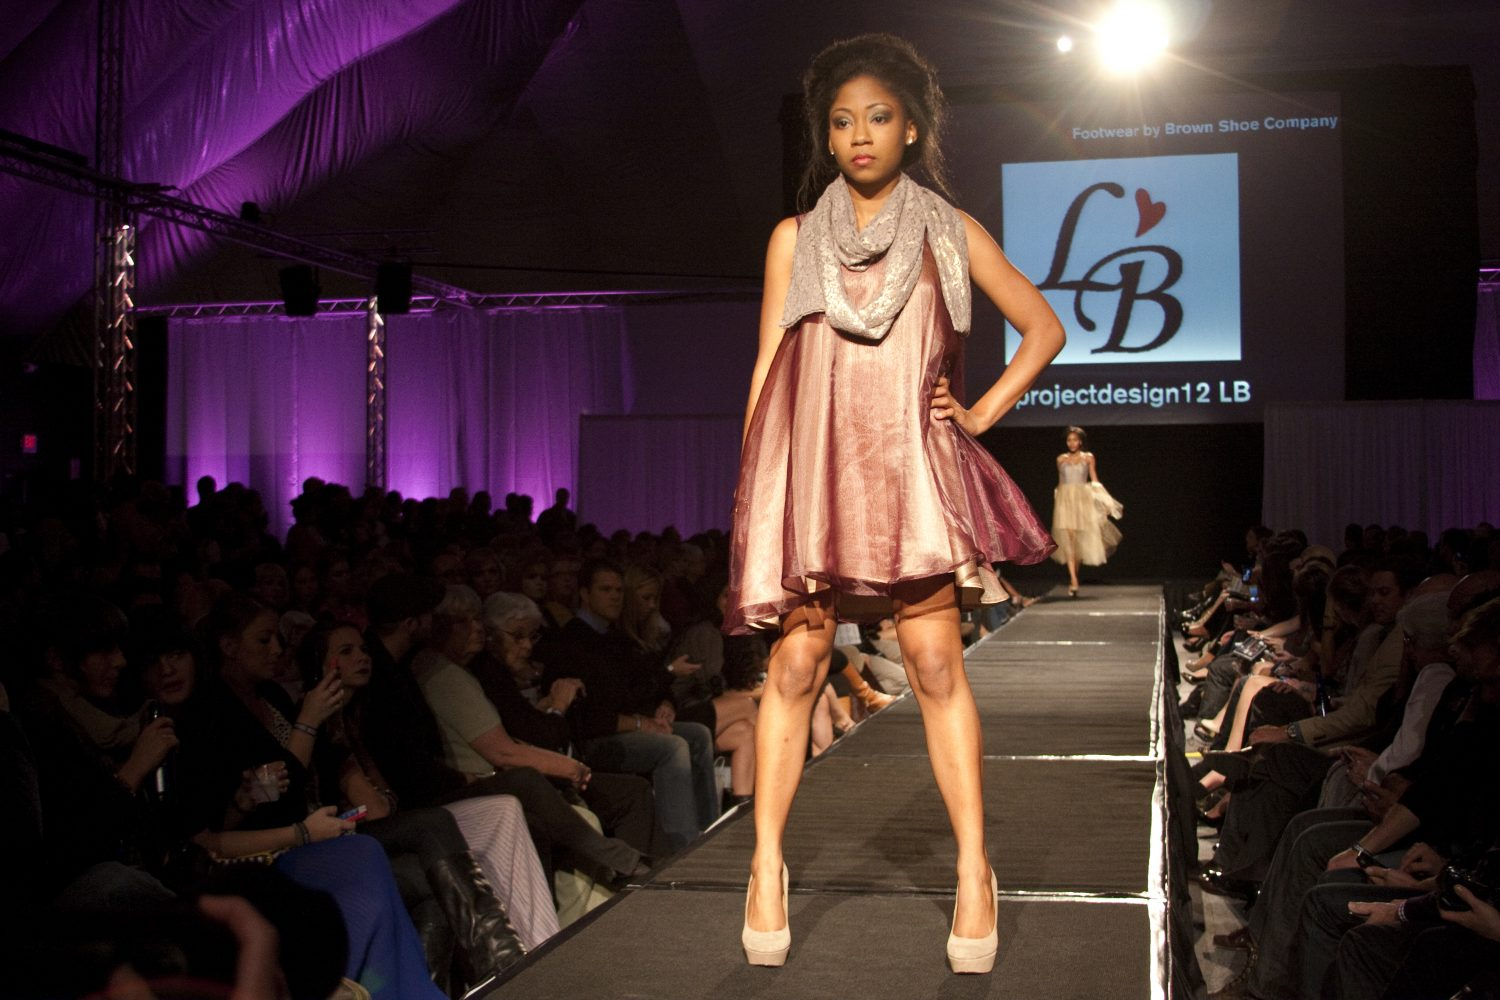 Project%3A+Design%21+models+in+the+LB+by+Lauren+Bander+line+wore+a+multitude+of+trapeze-style+dresses+throughout+the+show.+%28Noah+Berman+%2F+Contributor%29